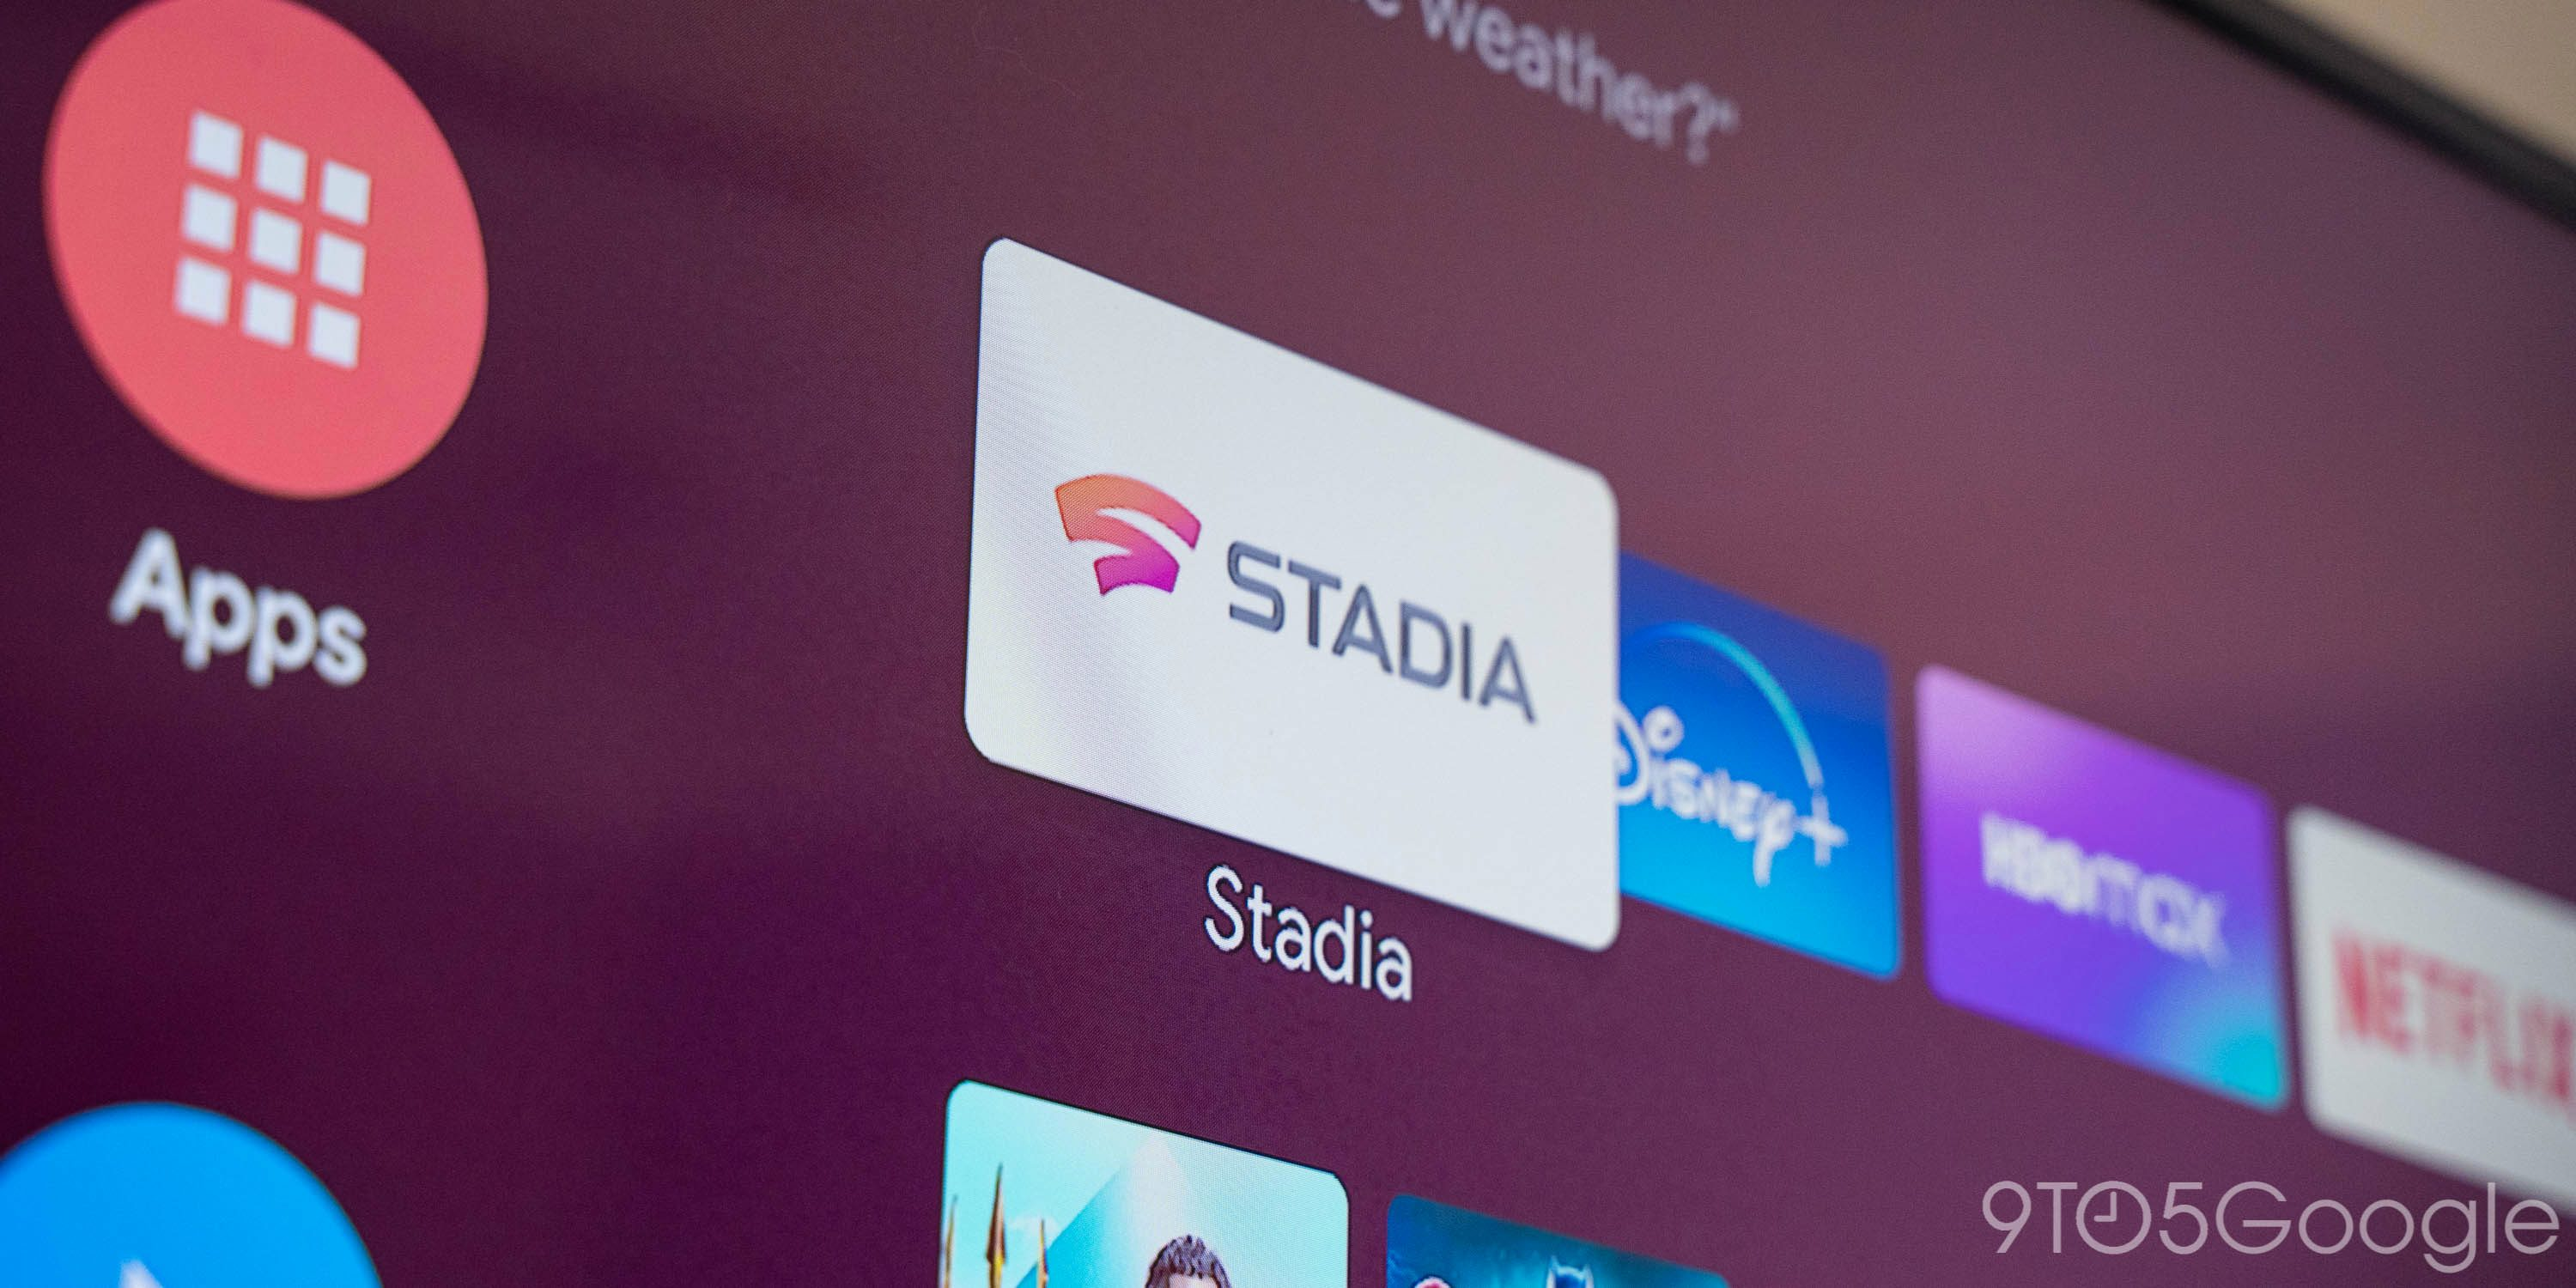 Google stadia android tv app